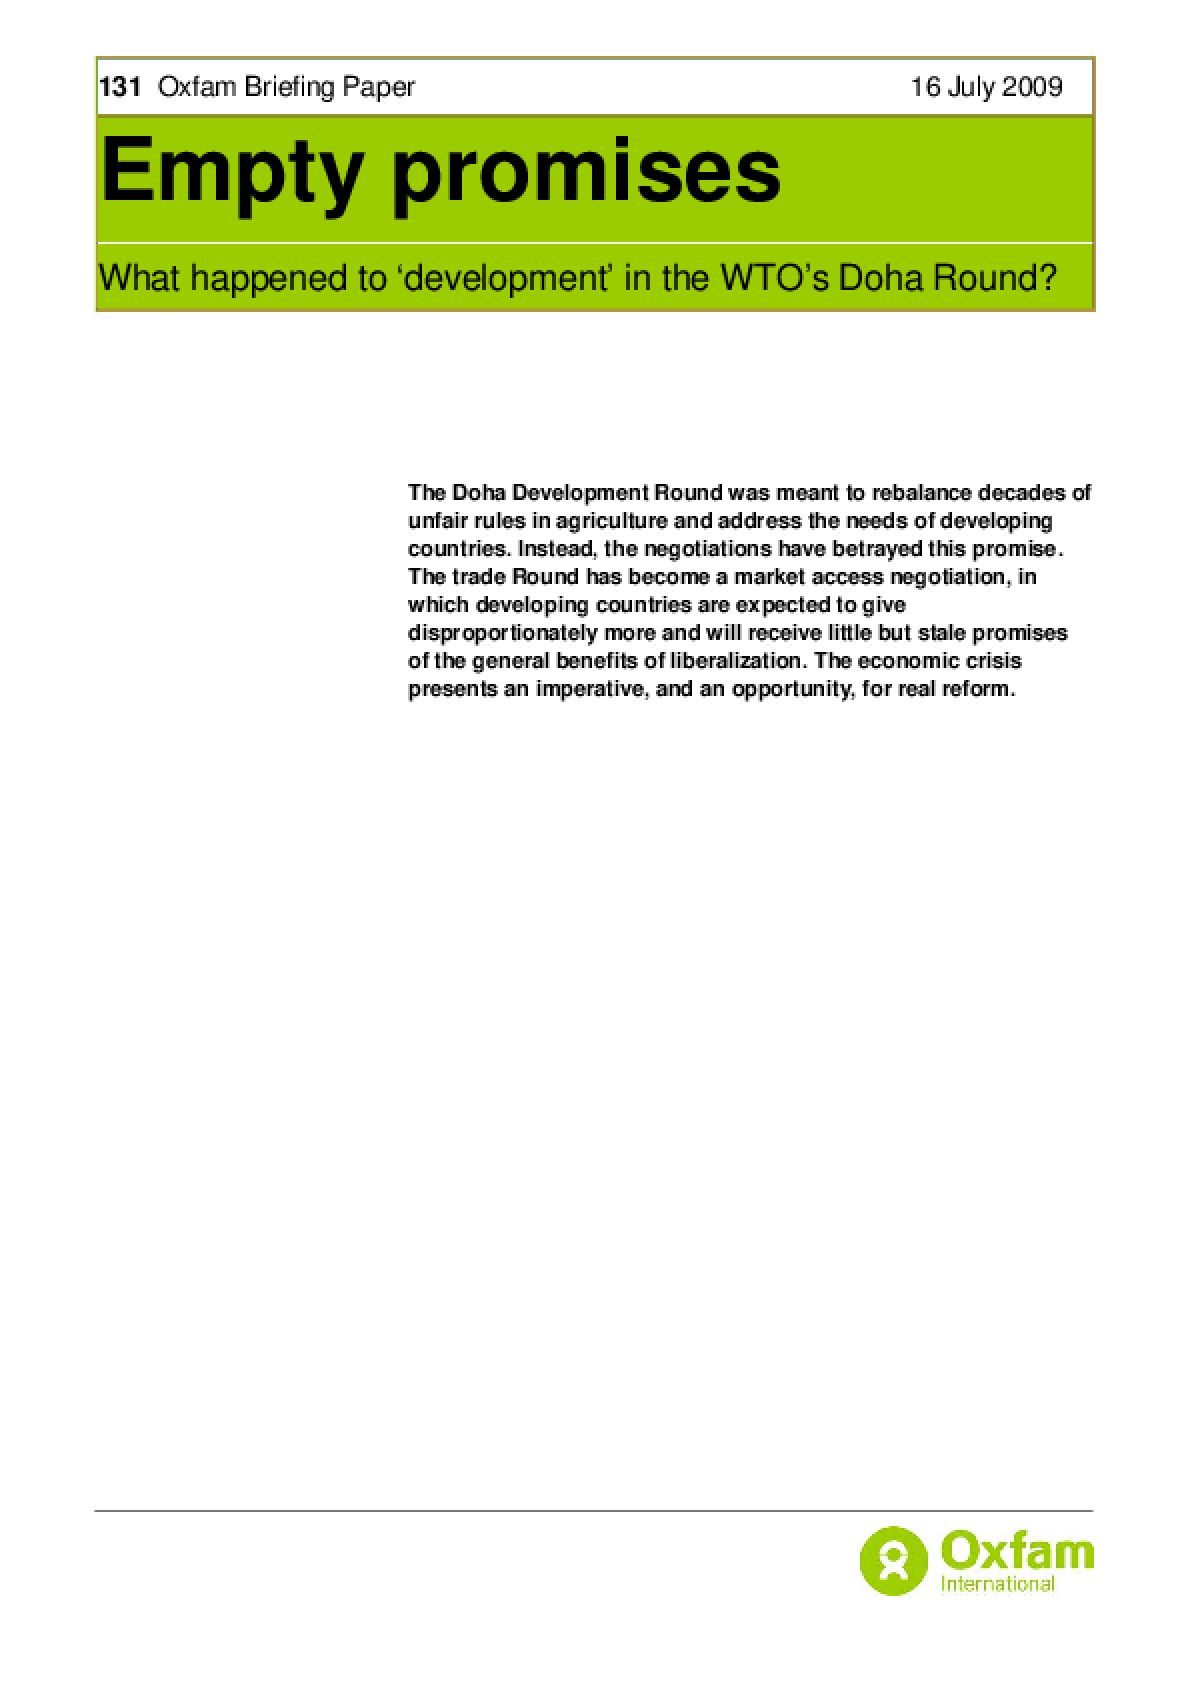 Empty Promises: What happened to 'development' in the WTO's Doha Round?